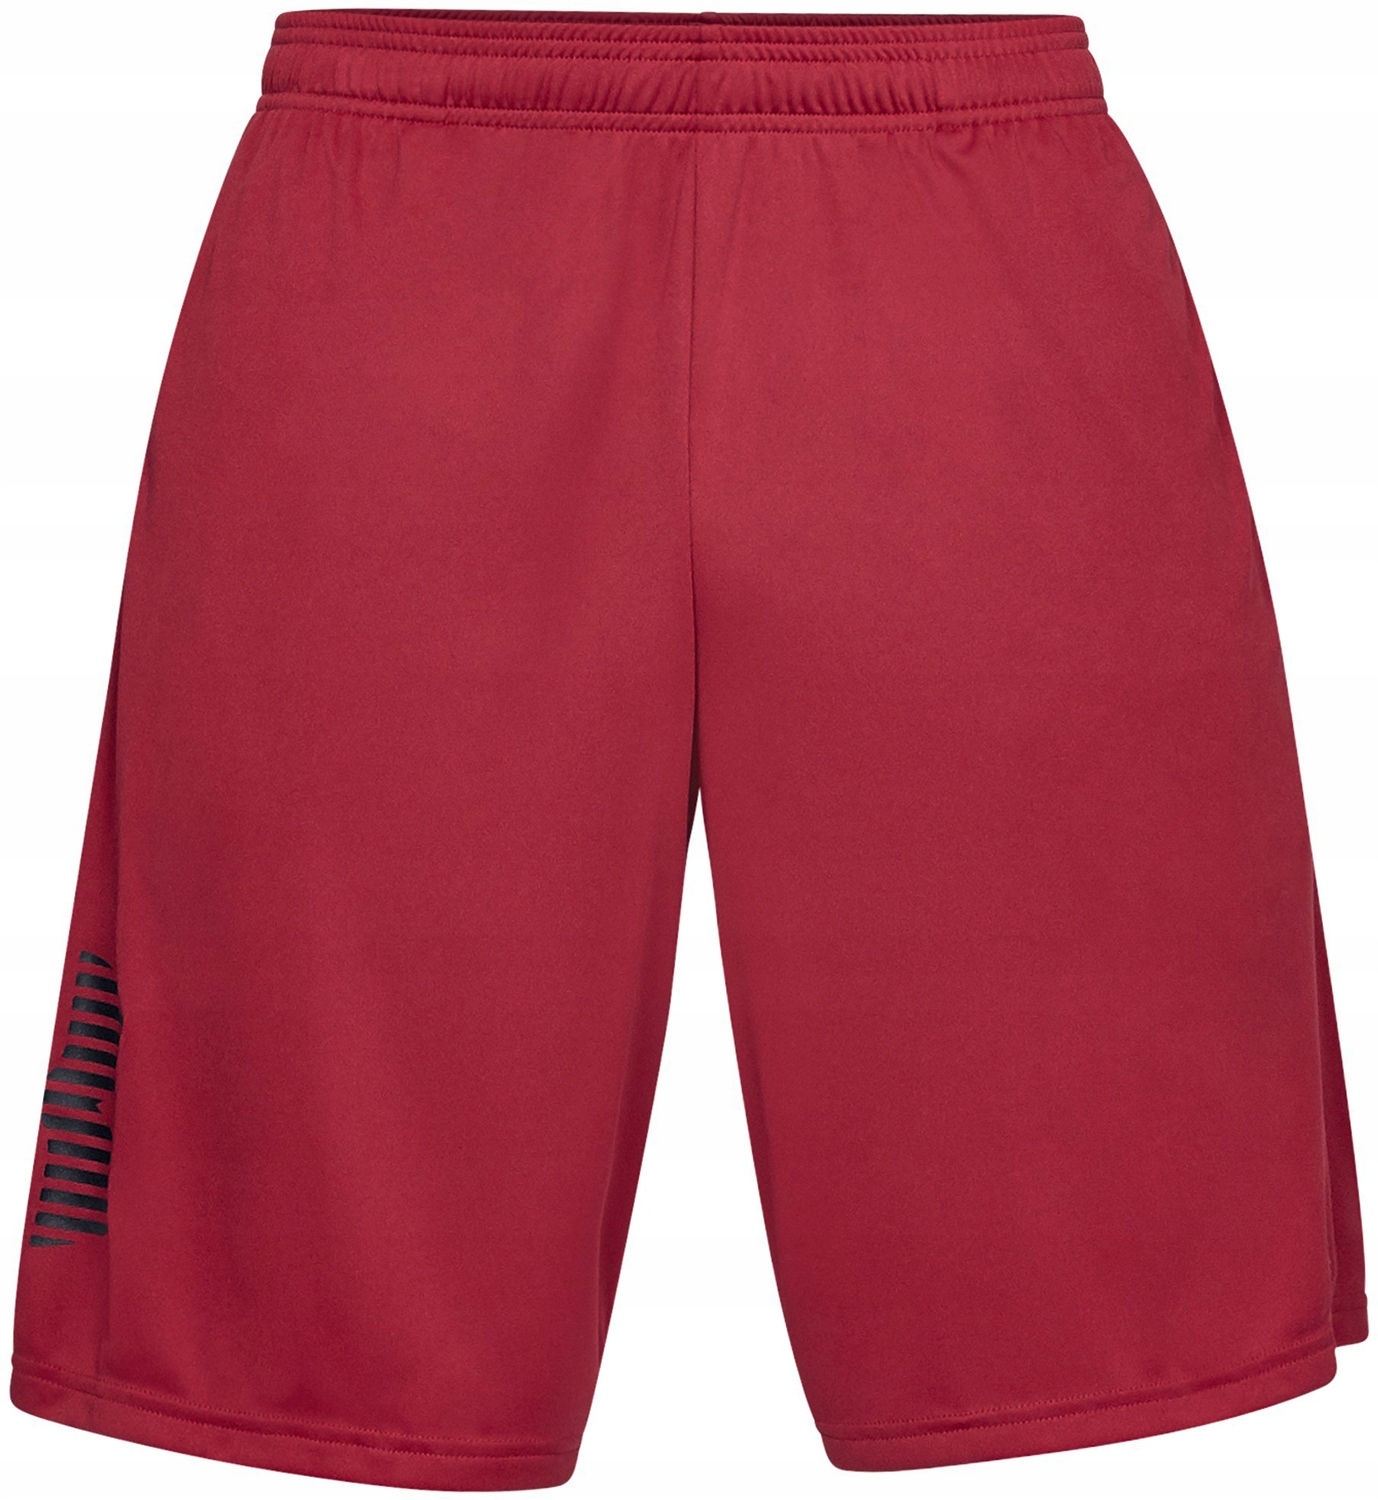 Spodenki Under Armour UA Tech Graphic Short Red #L